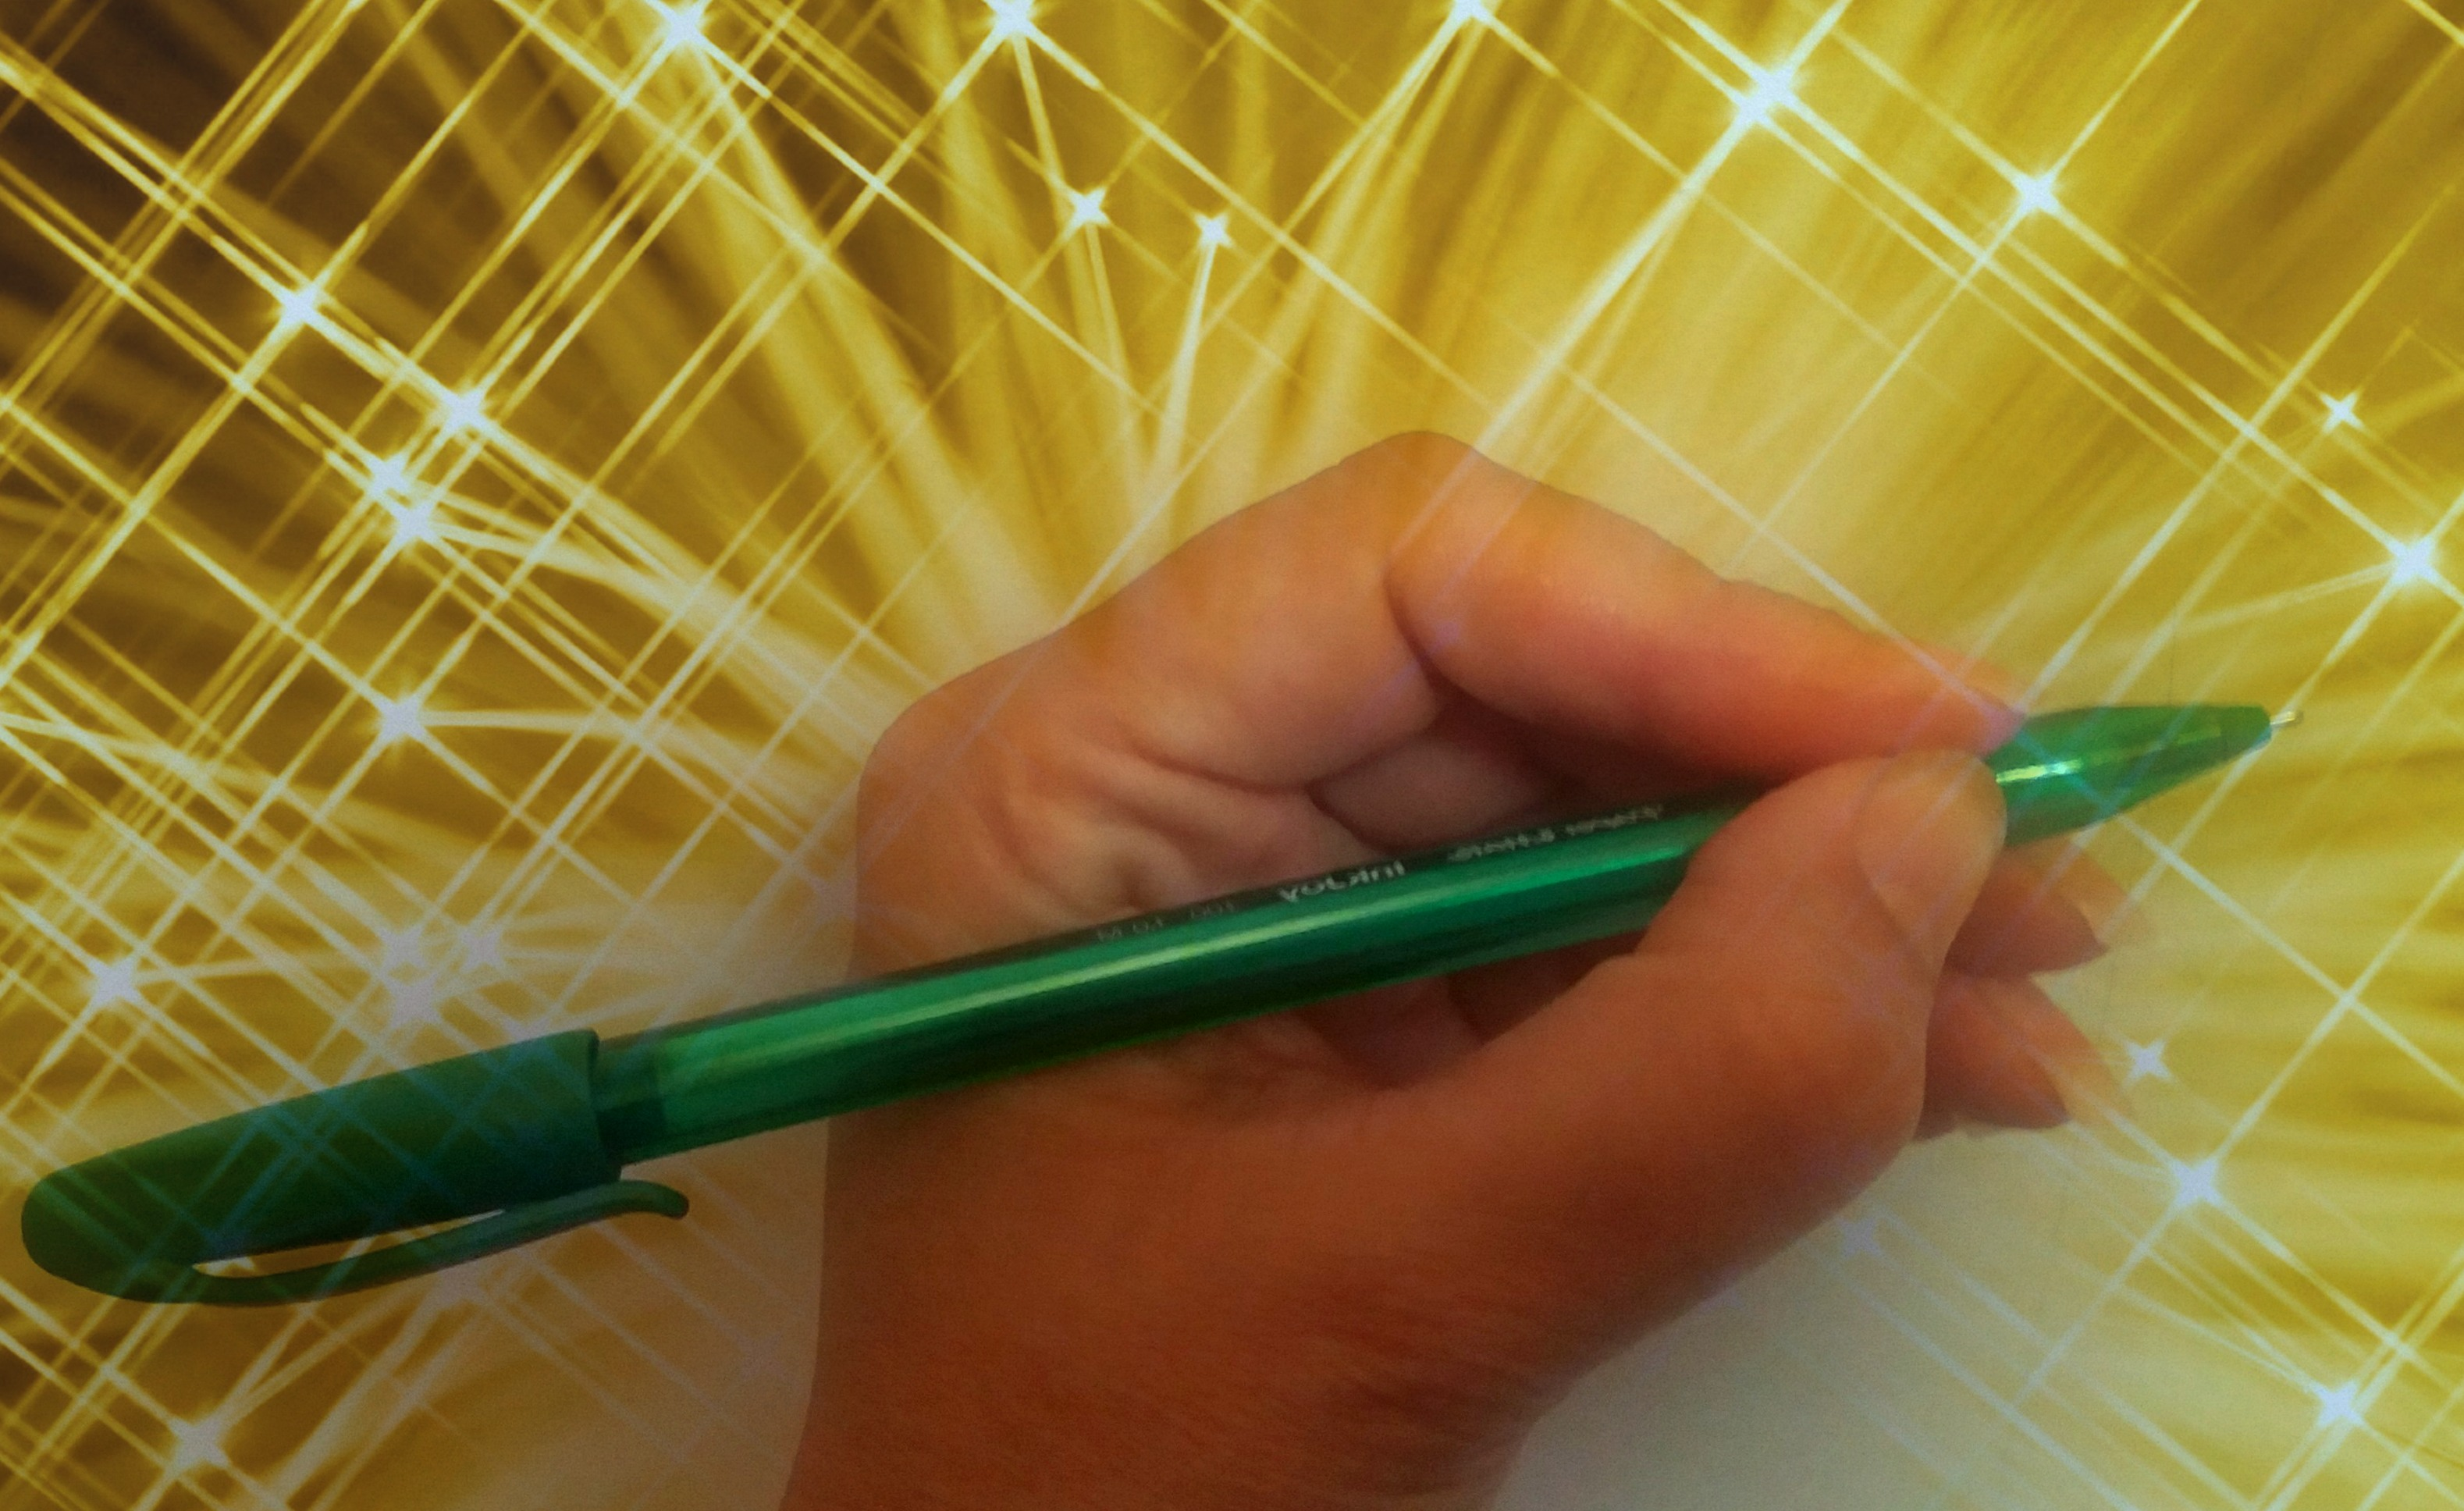 green pen burst